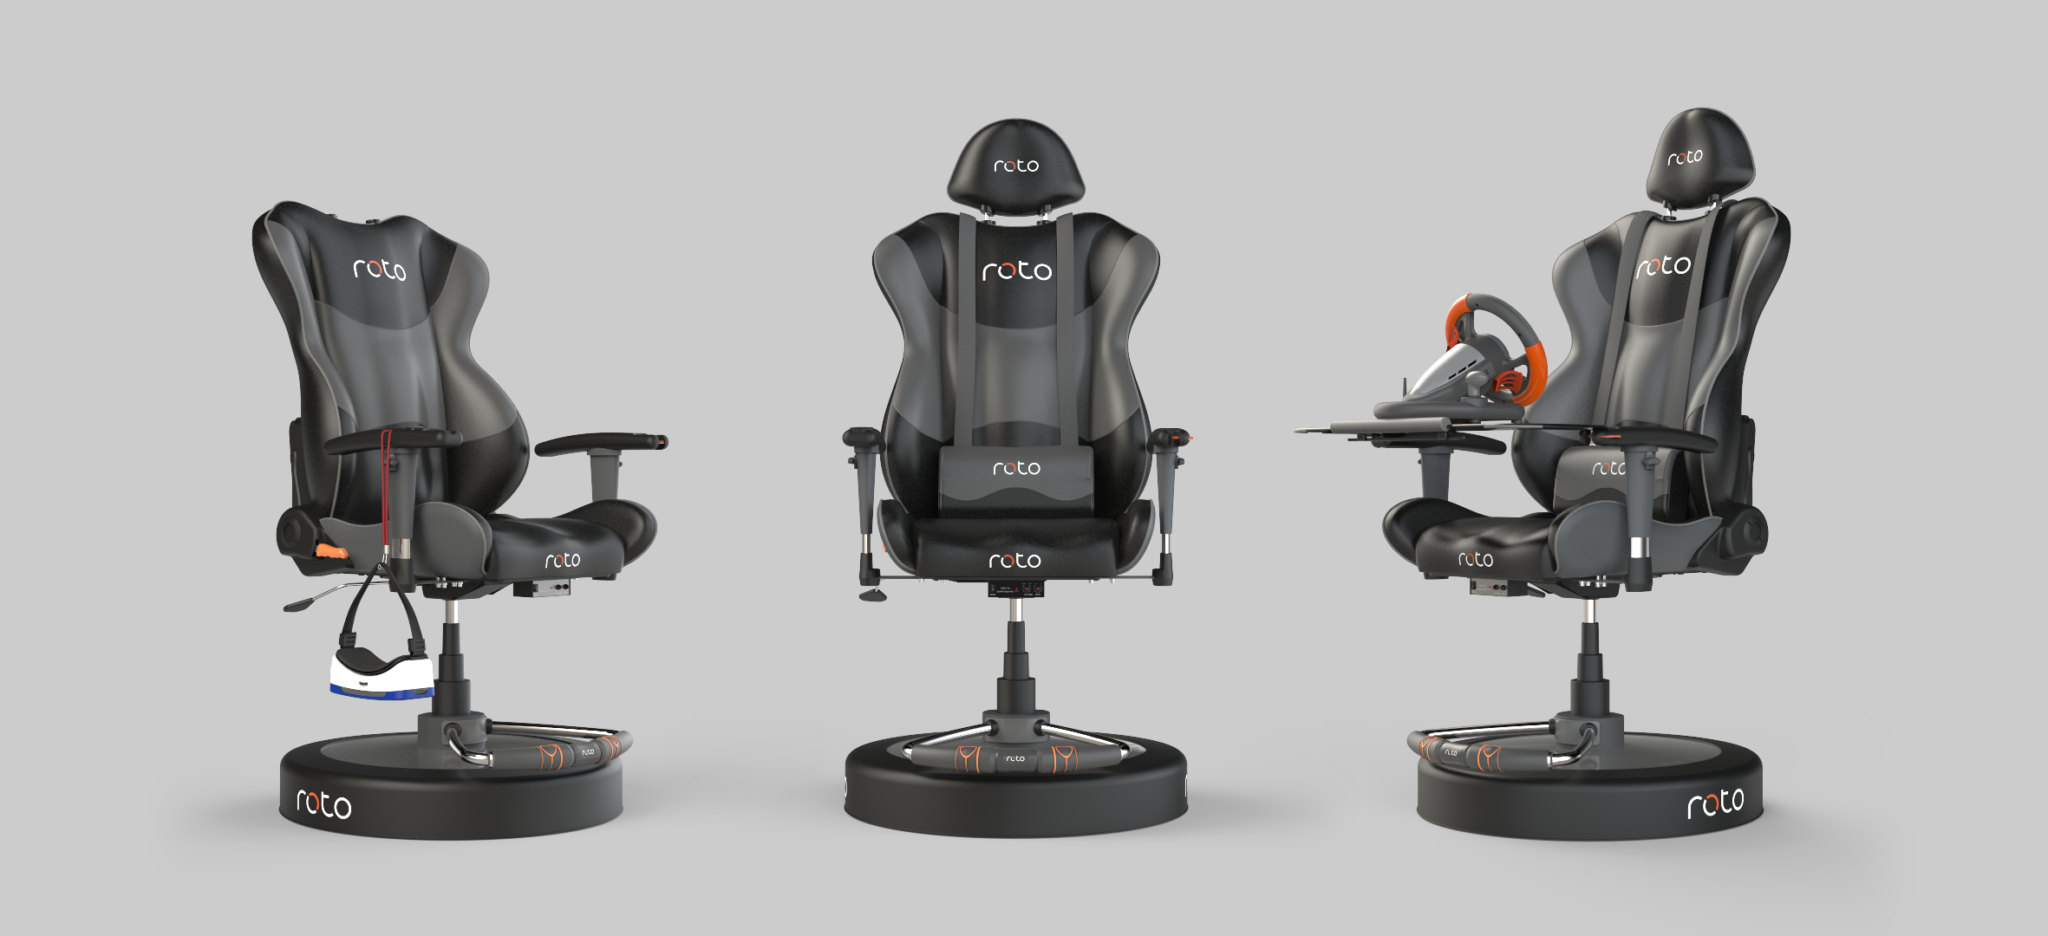 Best Pc Gaming Chair together with Smartphone Tablet Repair additionally RSeat RS1 Assetto Corsa Special Edition Unveiled likewise Best Gaming Desks besides Which Simulation Setup Gaming For Racing Game Do You Have. on gaming chair stand